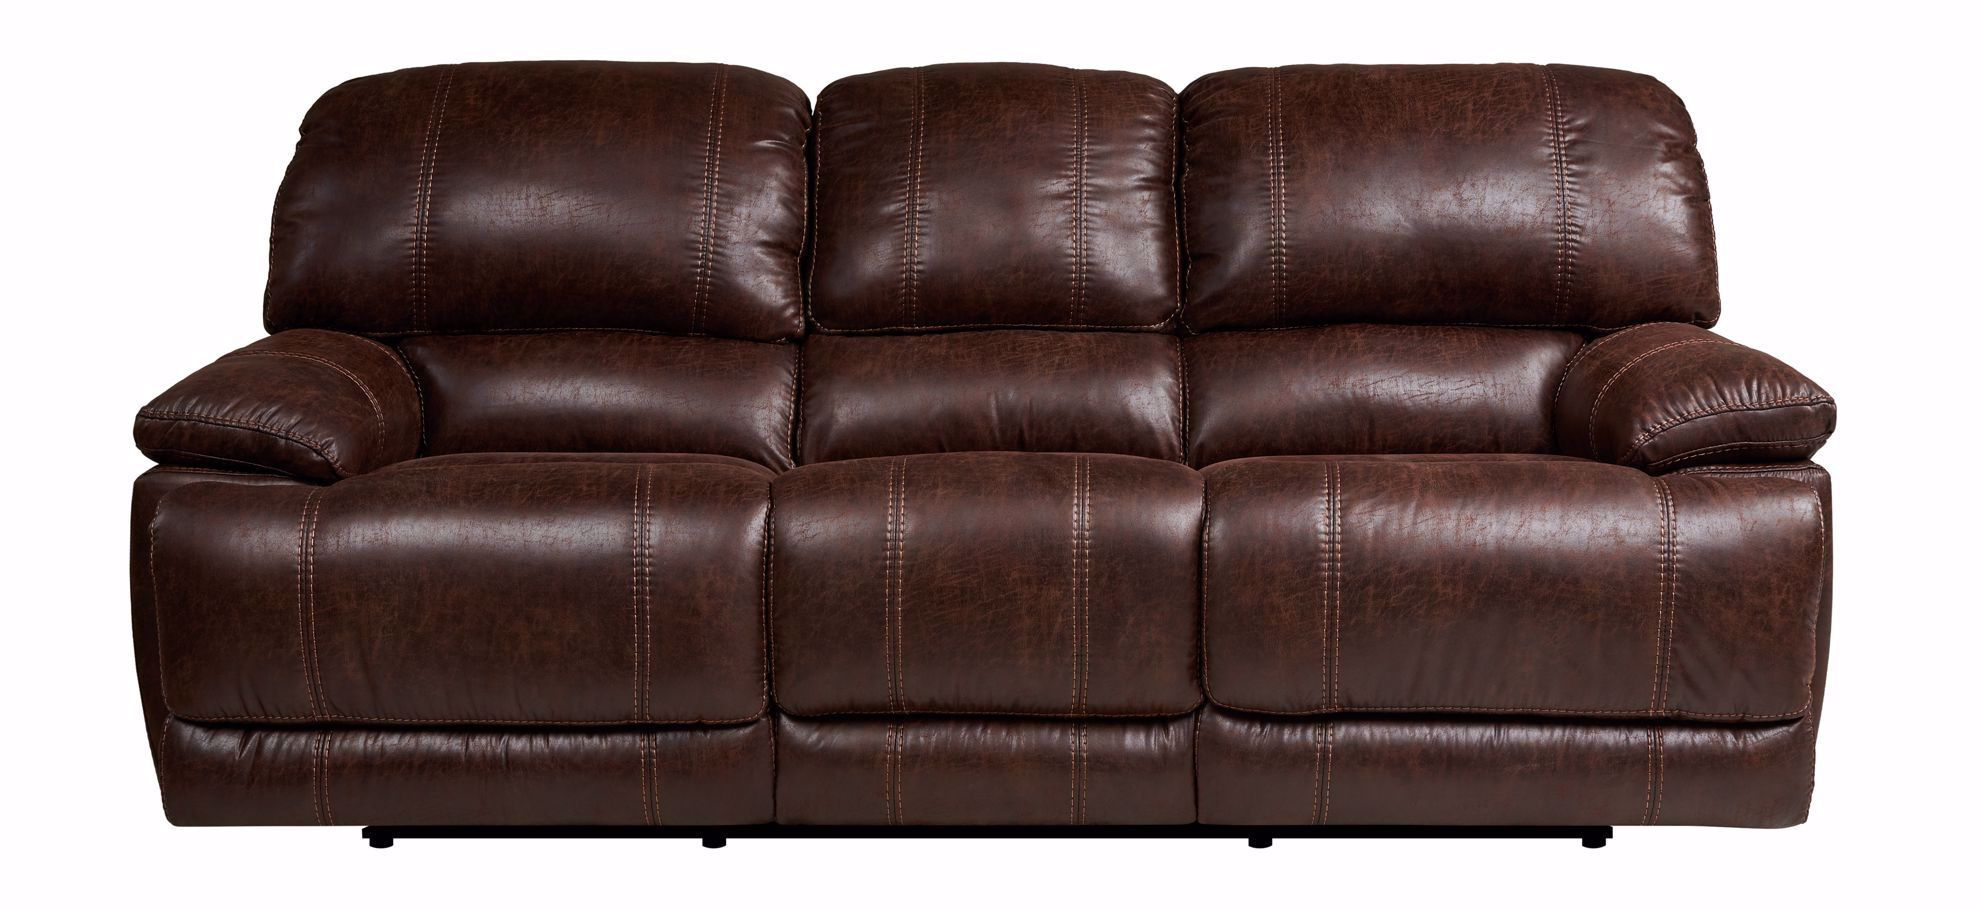 Picture of Victor Silt Power Recliner Sofa